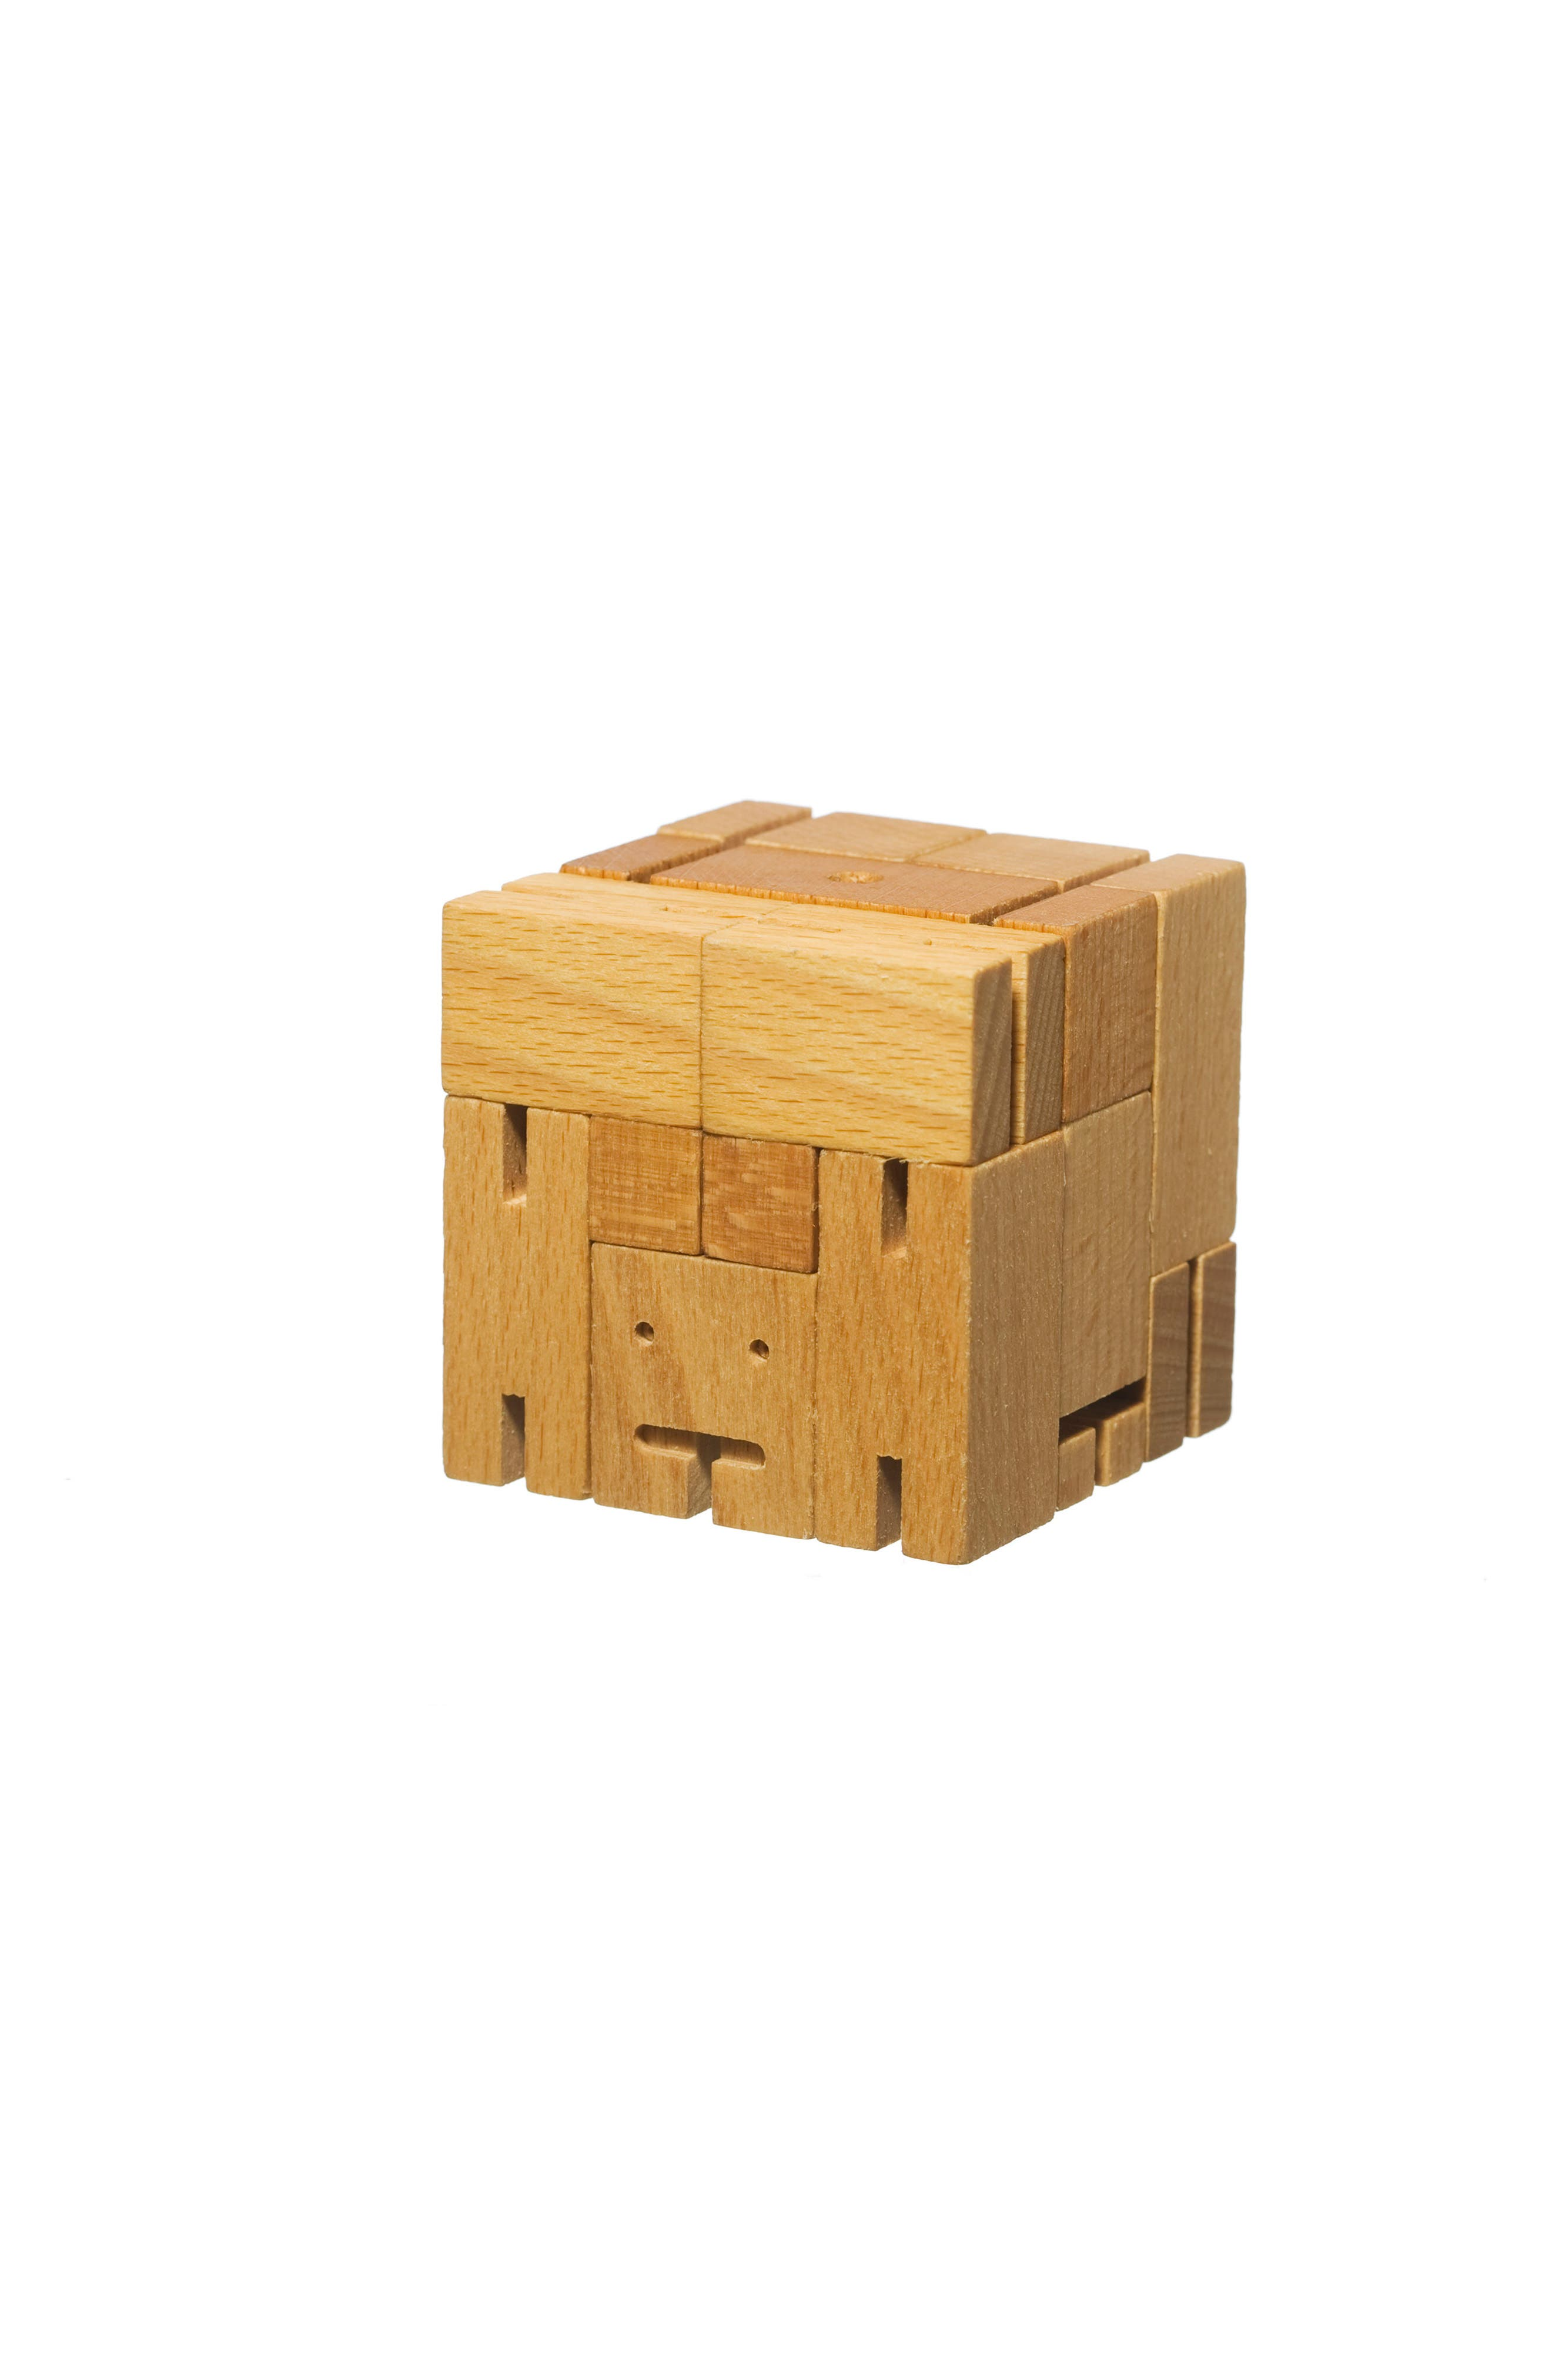 Cubebot Small Wooden Robot Toy,                             Alternate thumbnail 3, color,                             200